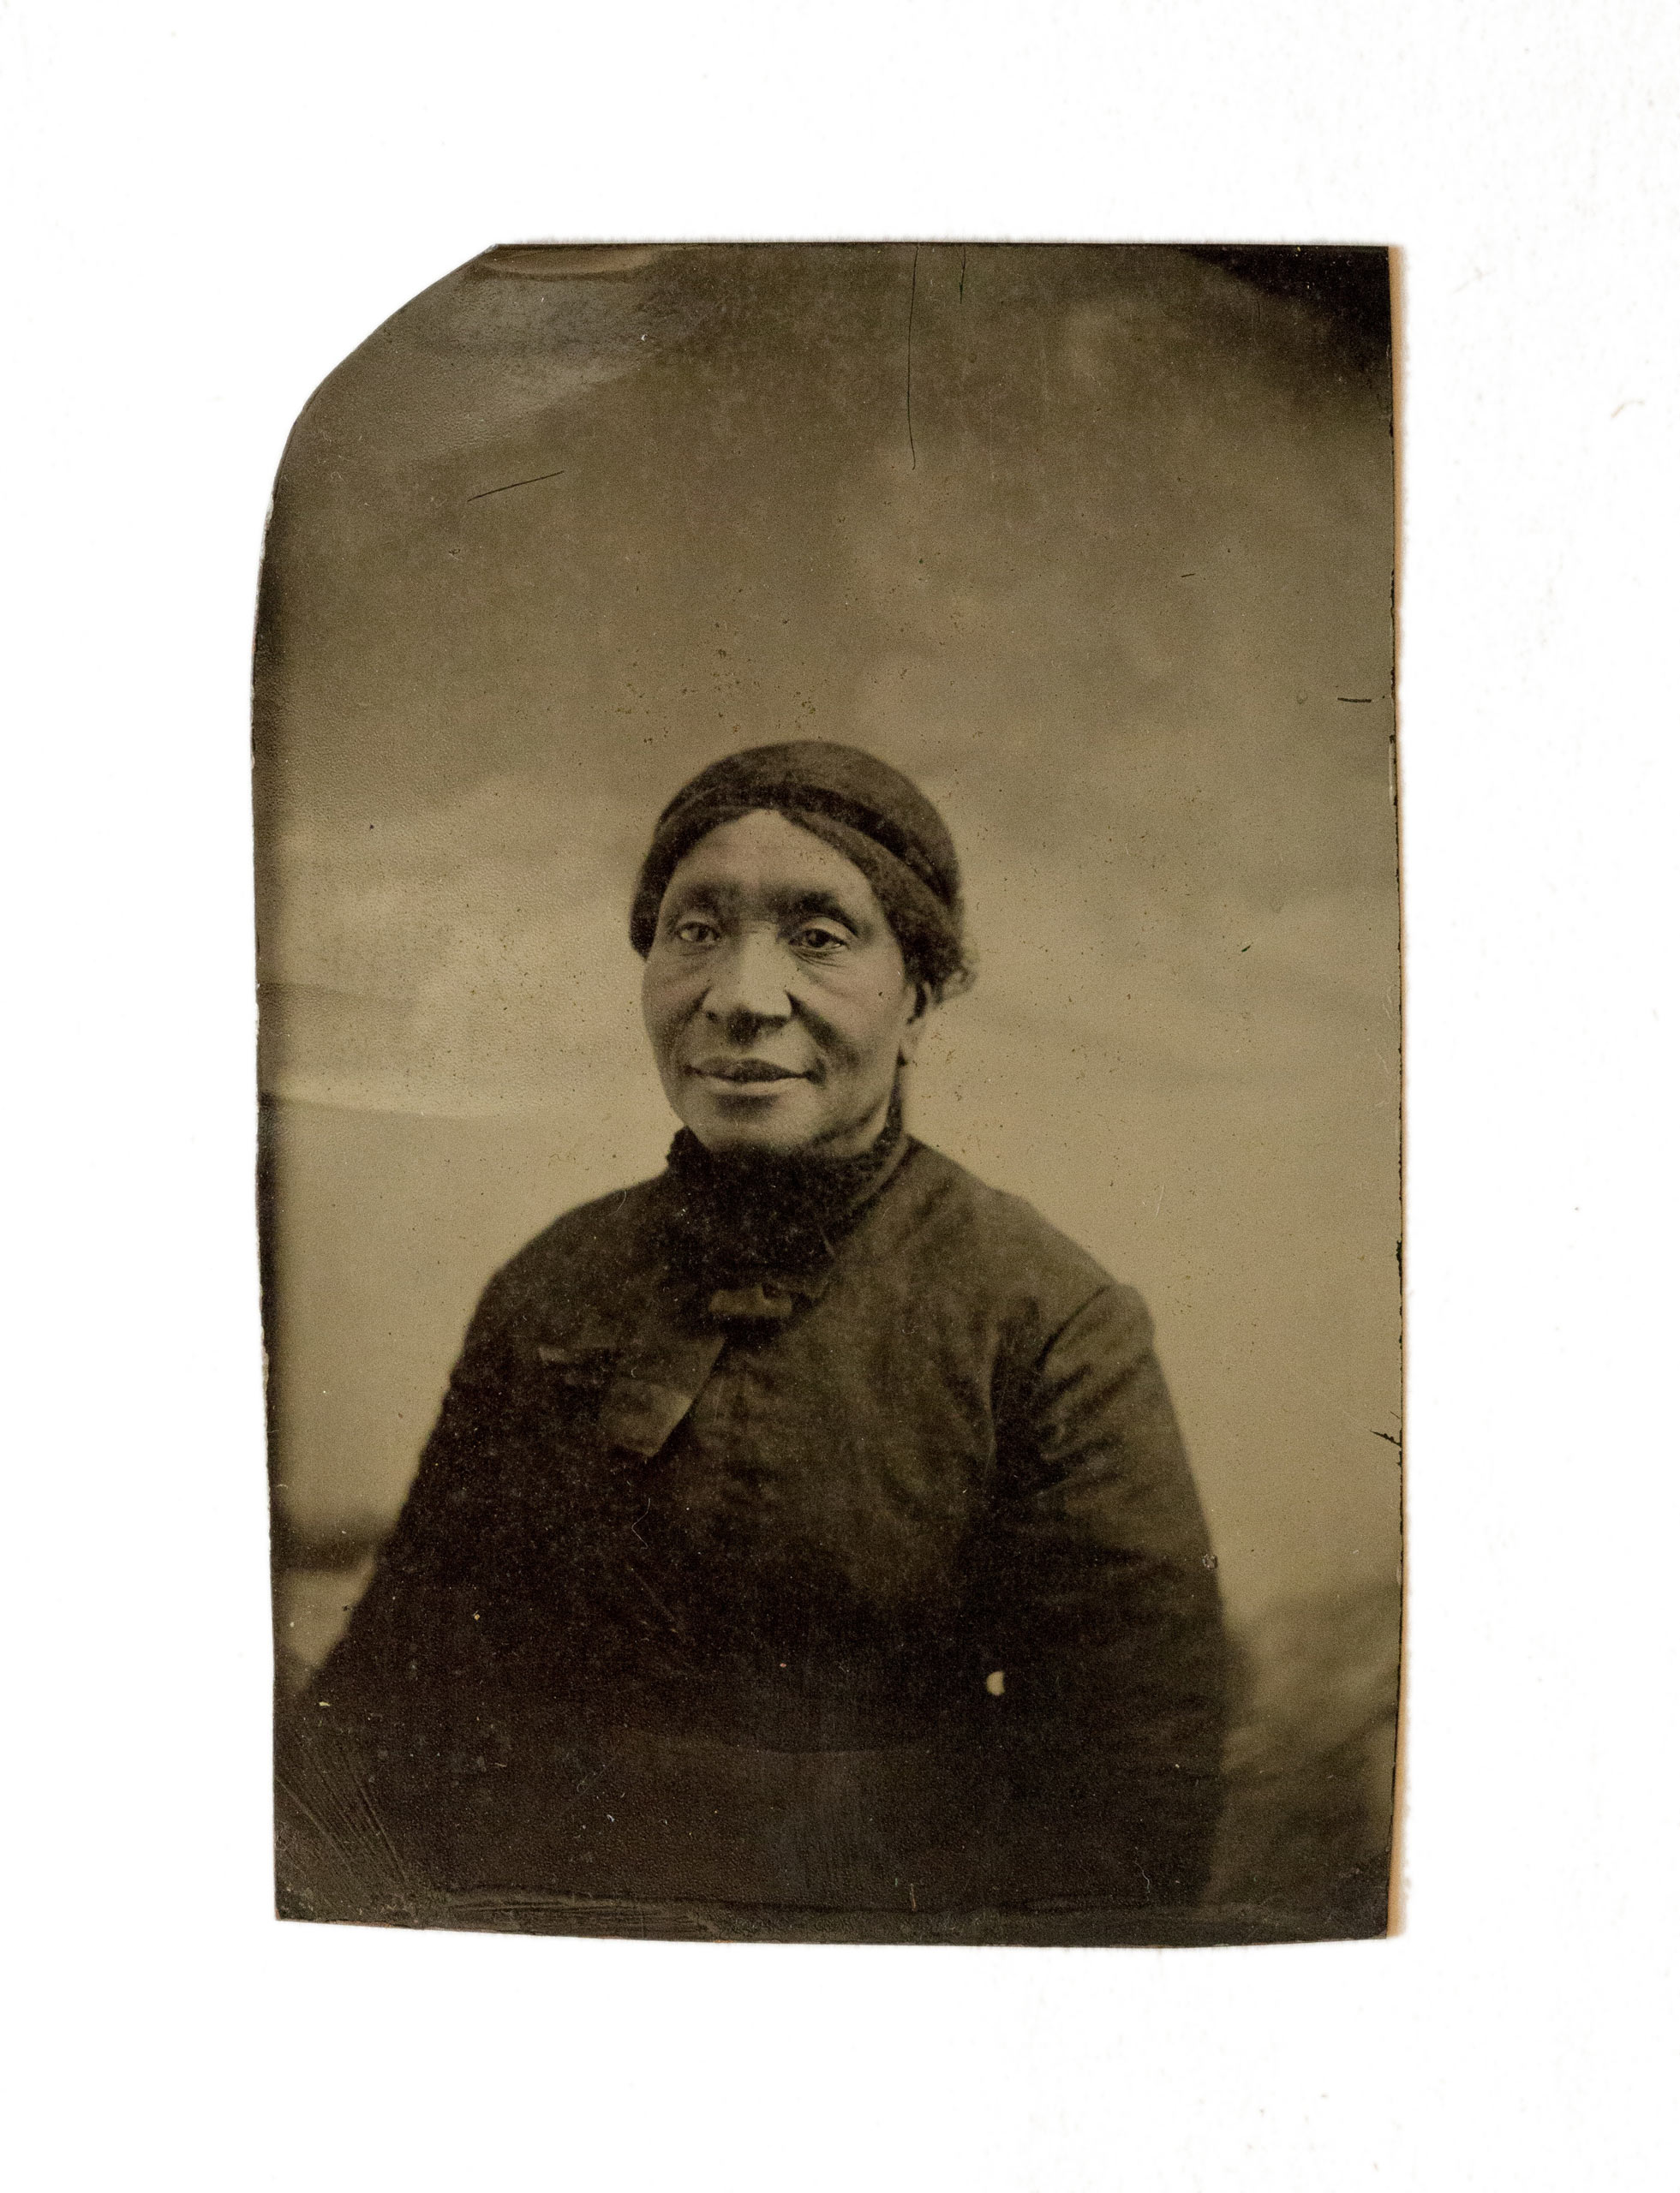 Sarah Luisa Parker nee Joseph was born as a Free Person of Color in East Hampton, N.Y., in 1837.